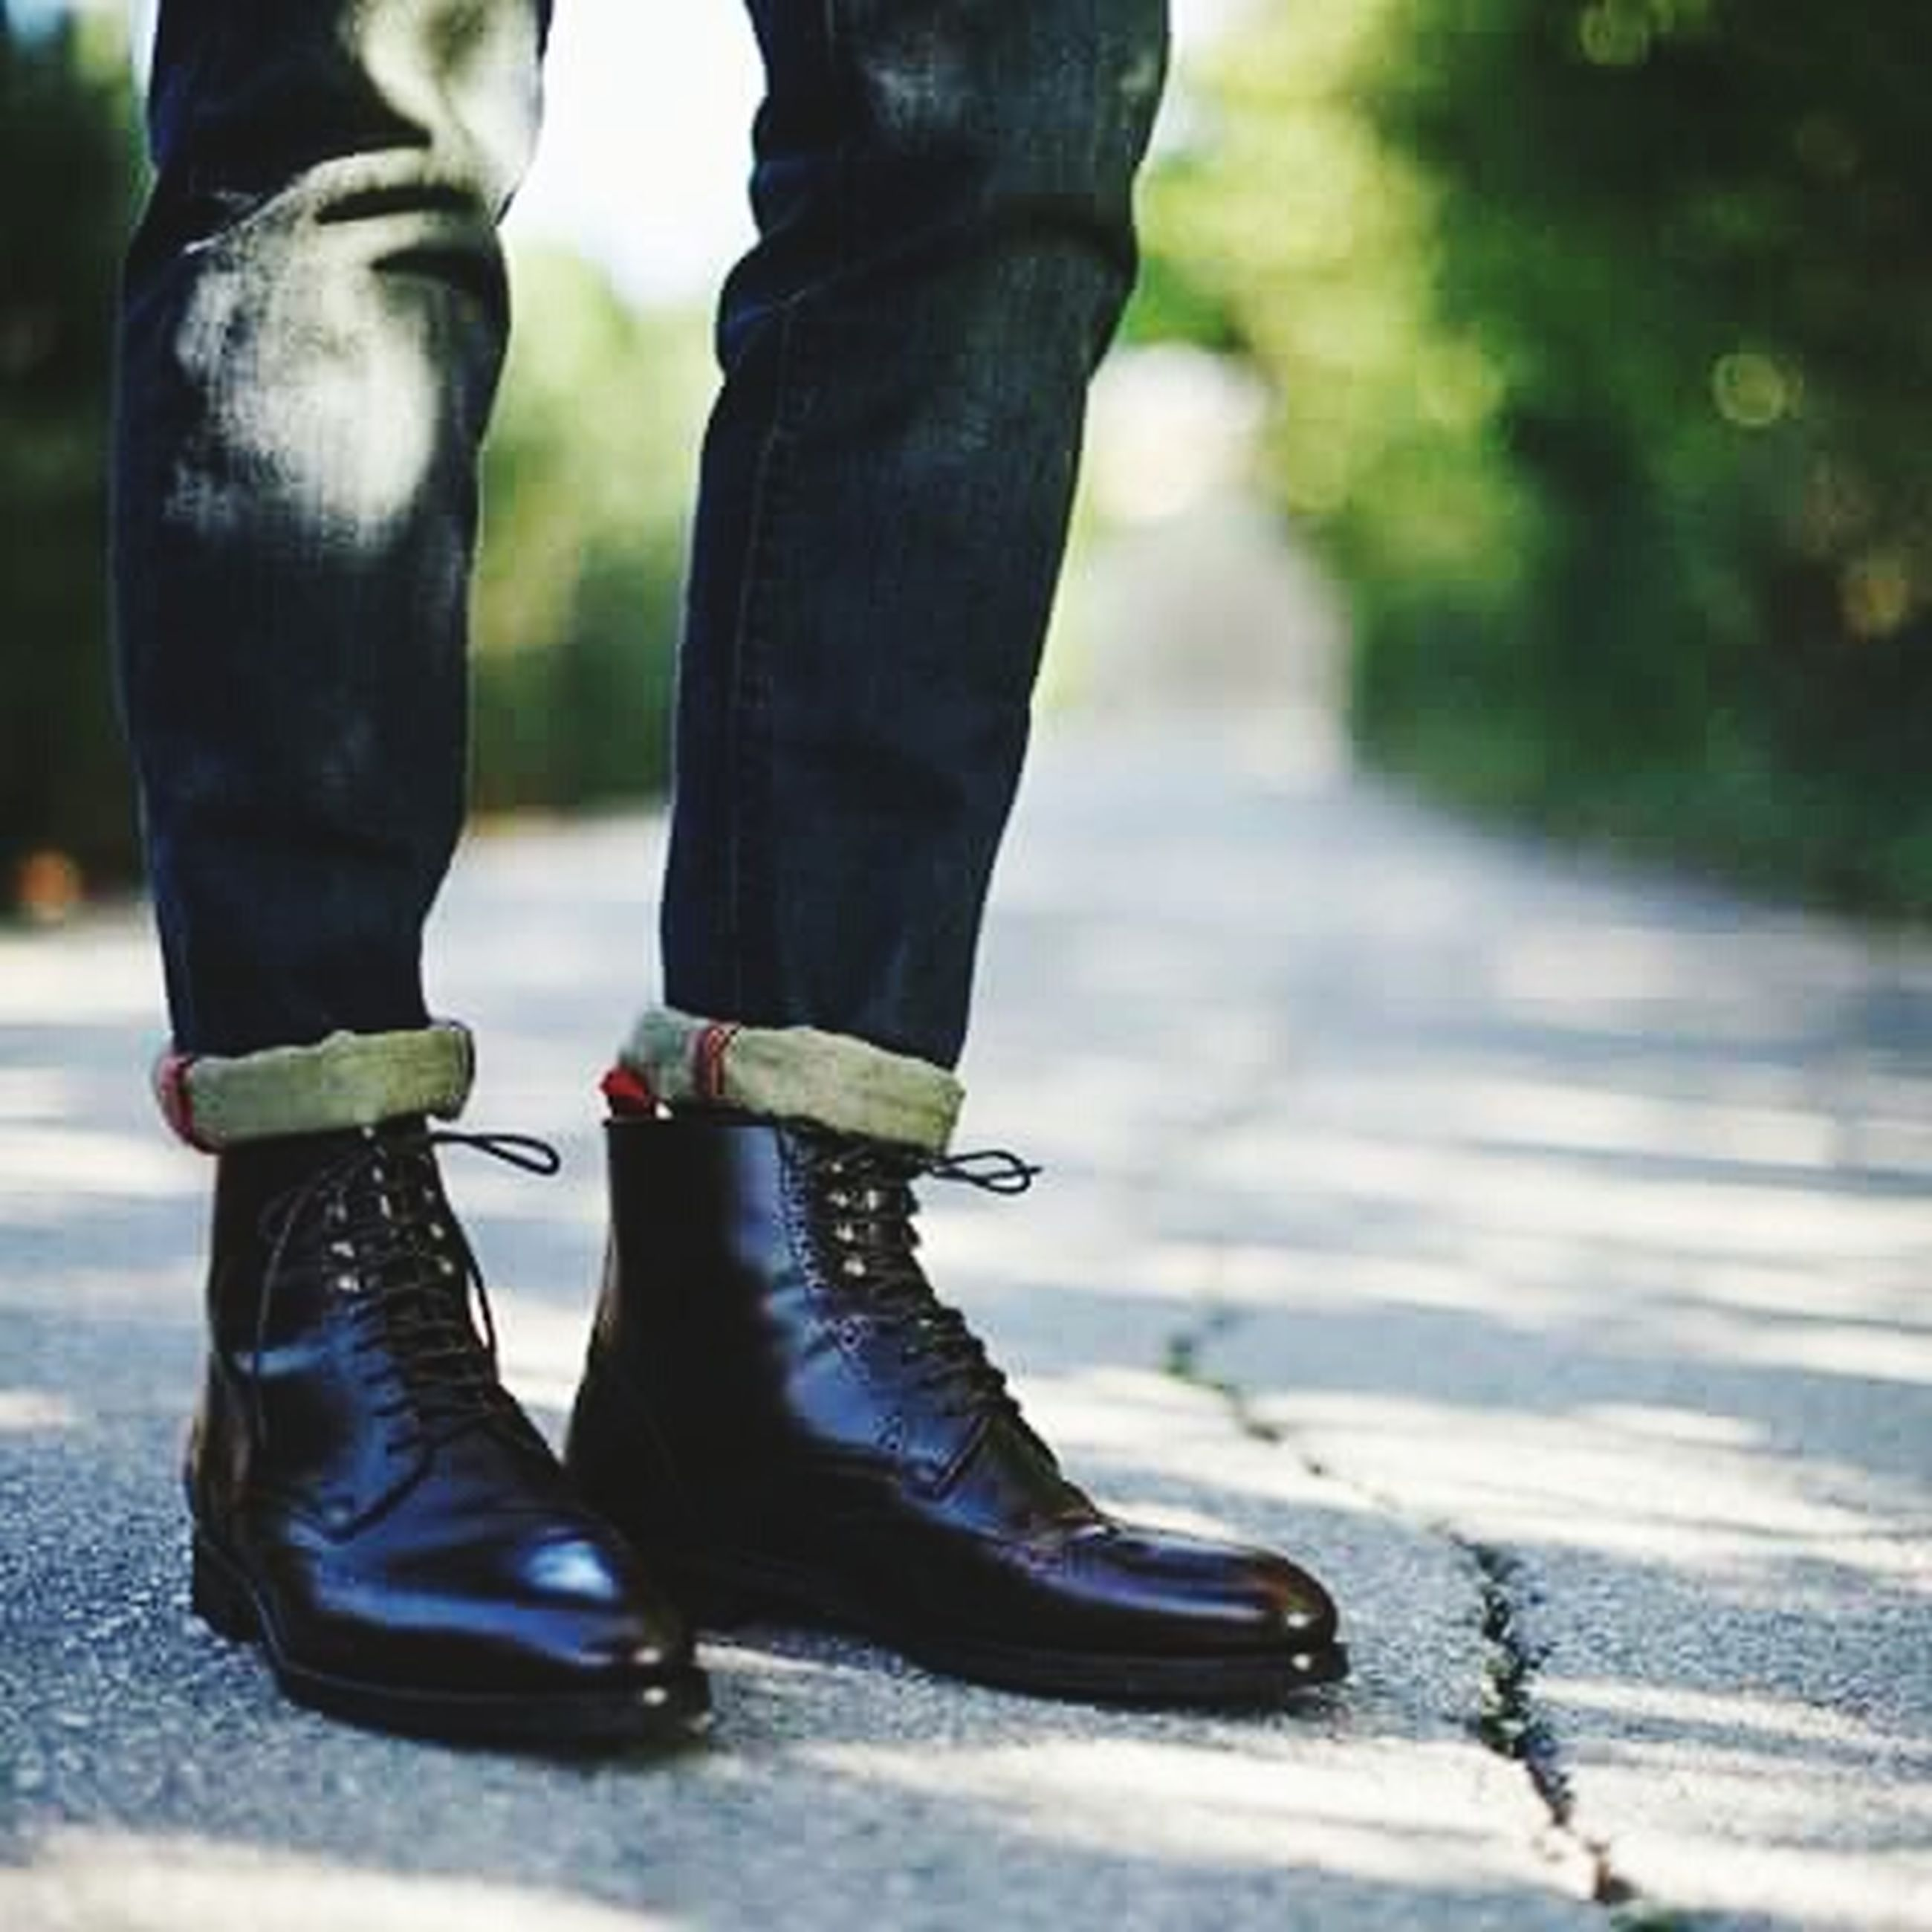 low section, person, shoe, lifestyles, standing, street, jeans, walking, footwear, casual clothing, men, focus on foreground, road, leisure activity, rear view, human foot